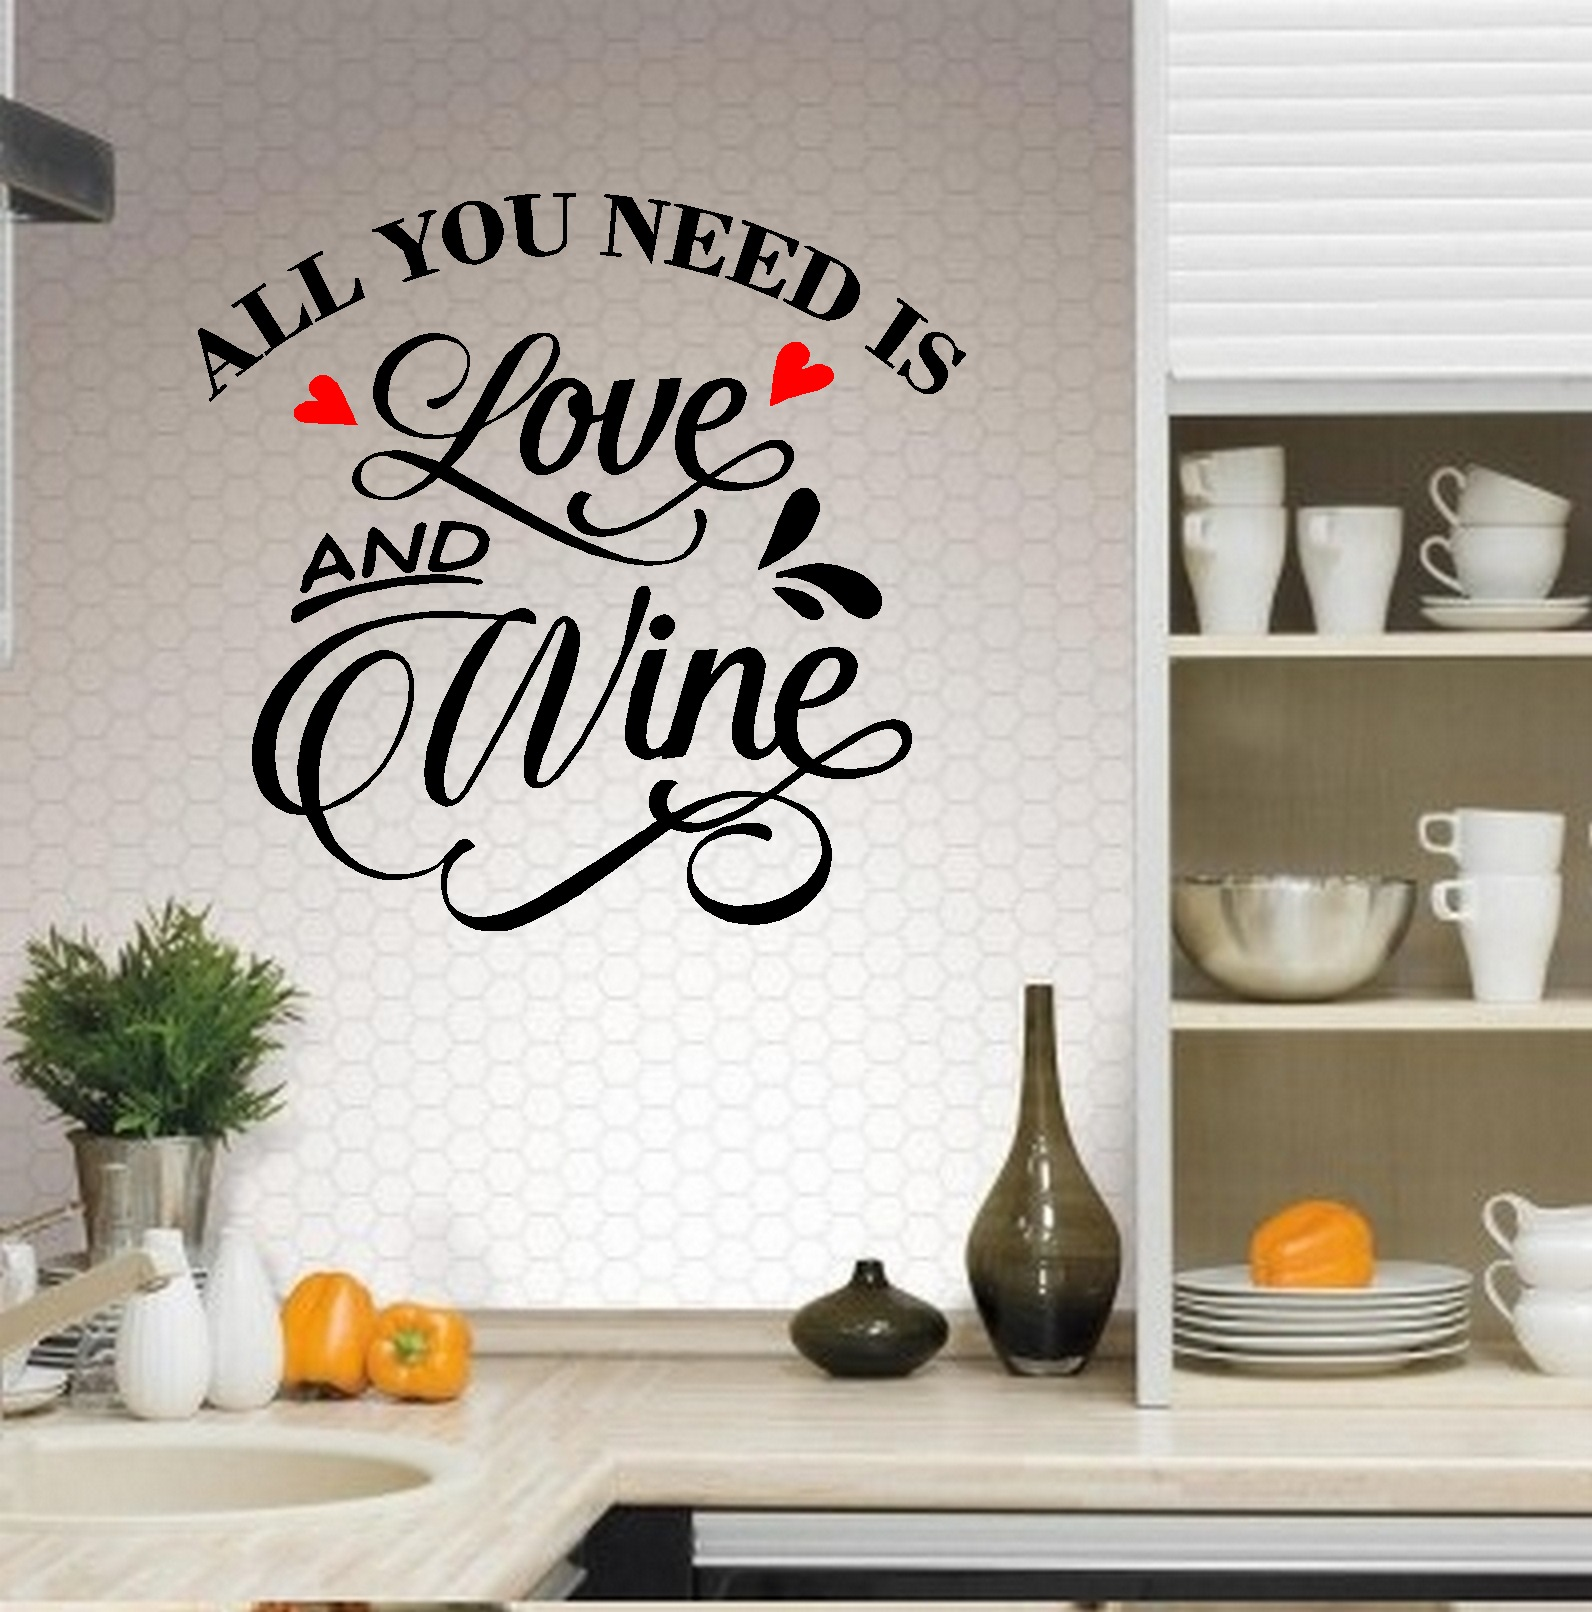 "Decal ~ Decal ~ All you need is Love and Wine: Kitchen Wall Decal 13"" x 13"" (Black/Red Hearts)"